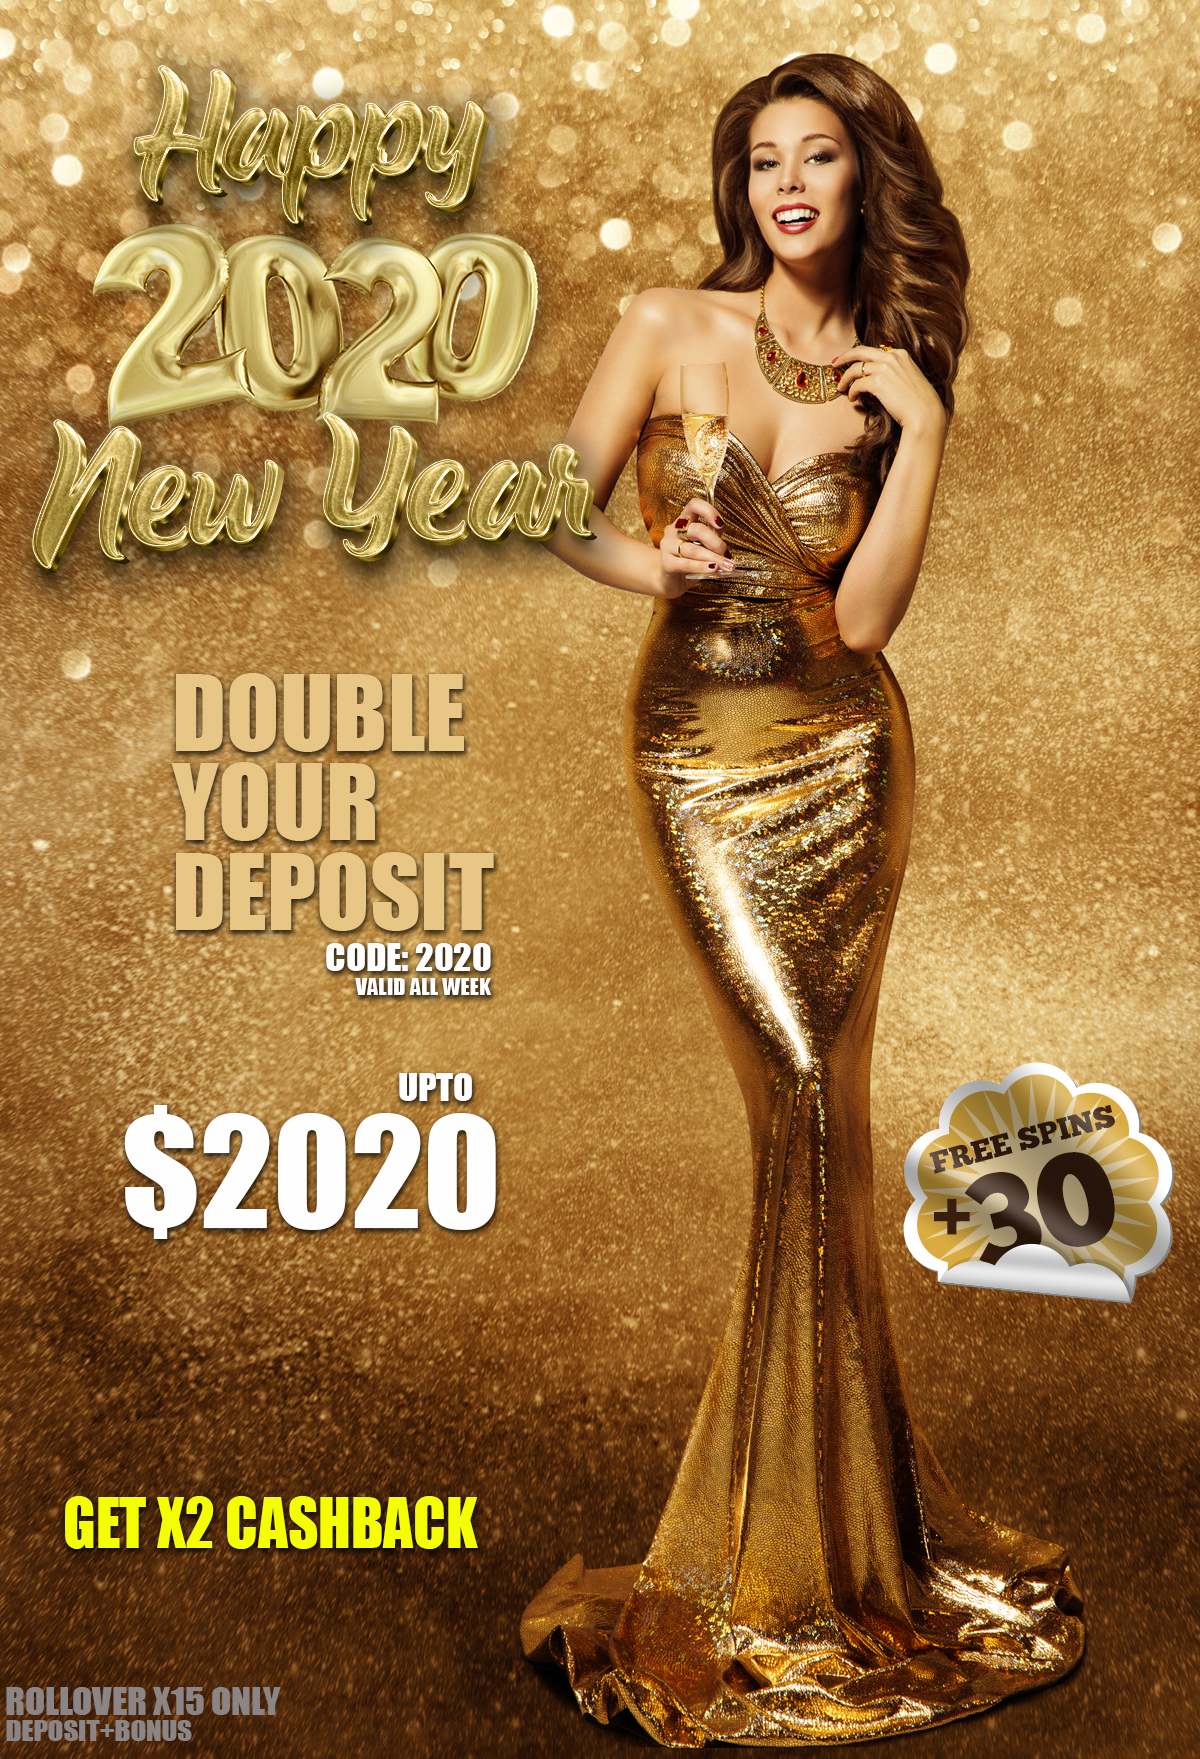 Happy New Year 2020 bonus + 30 Real money free spin